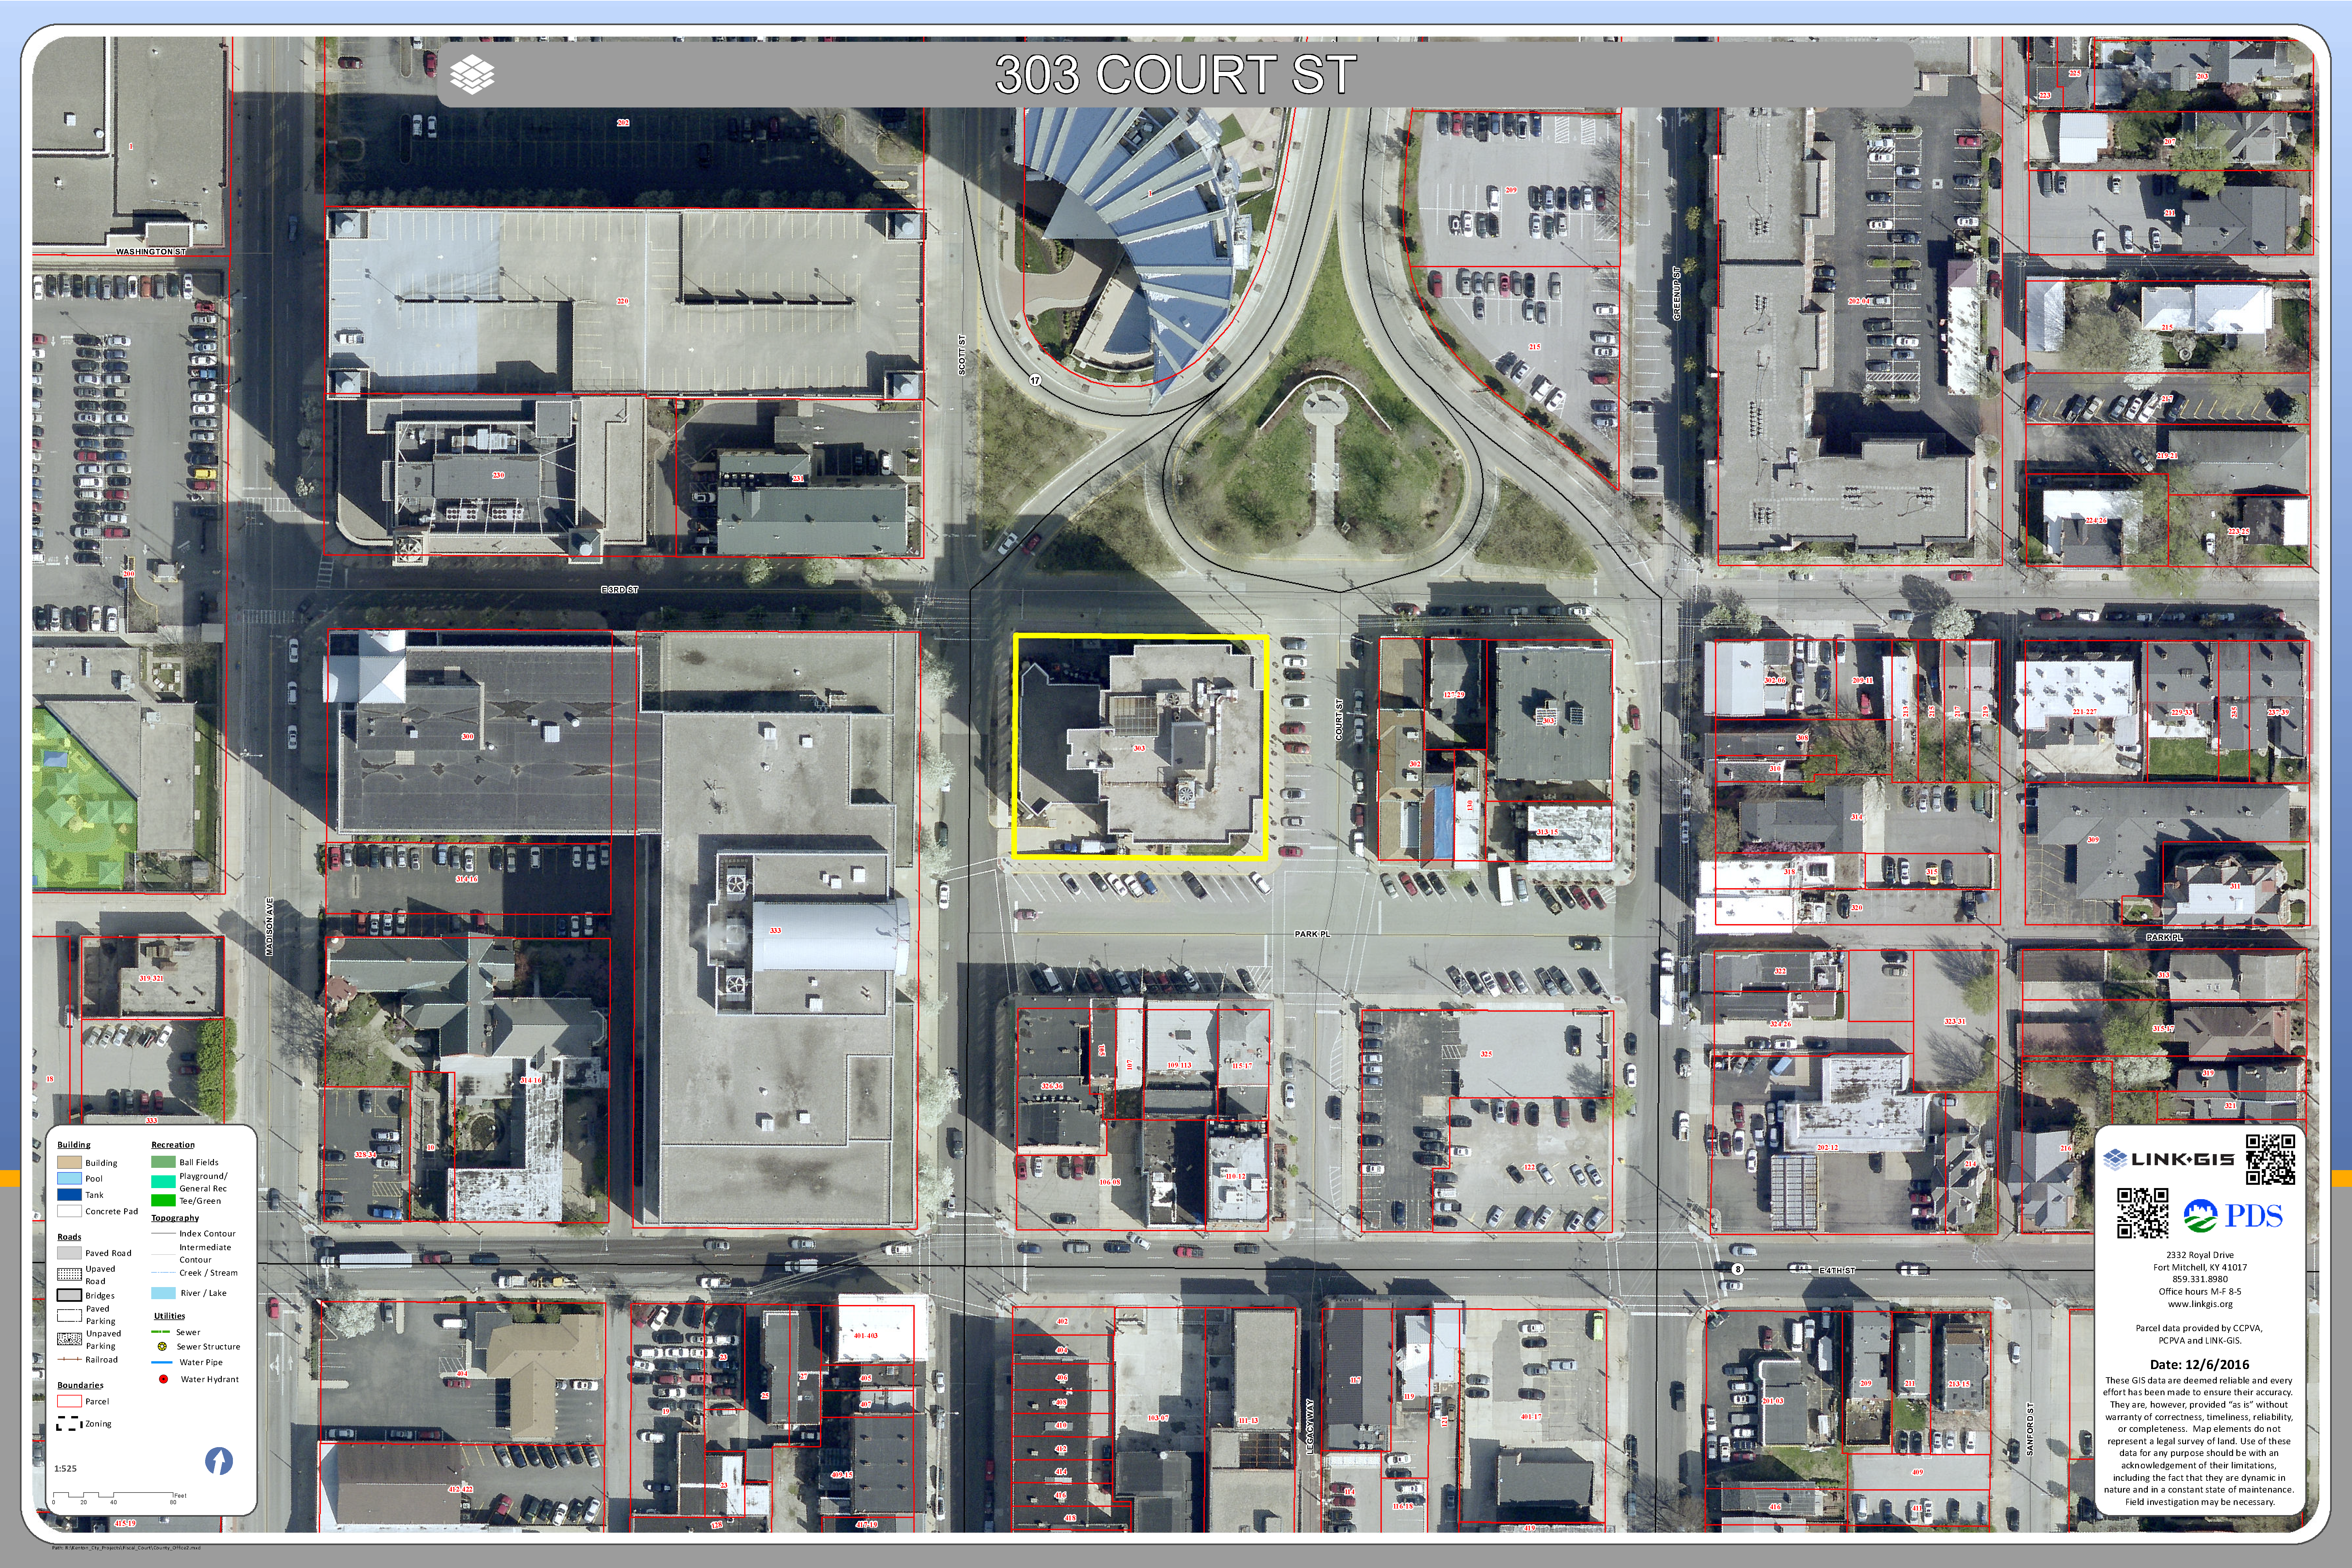 Aerial Map of 303 Court Street in Covington